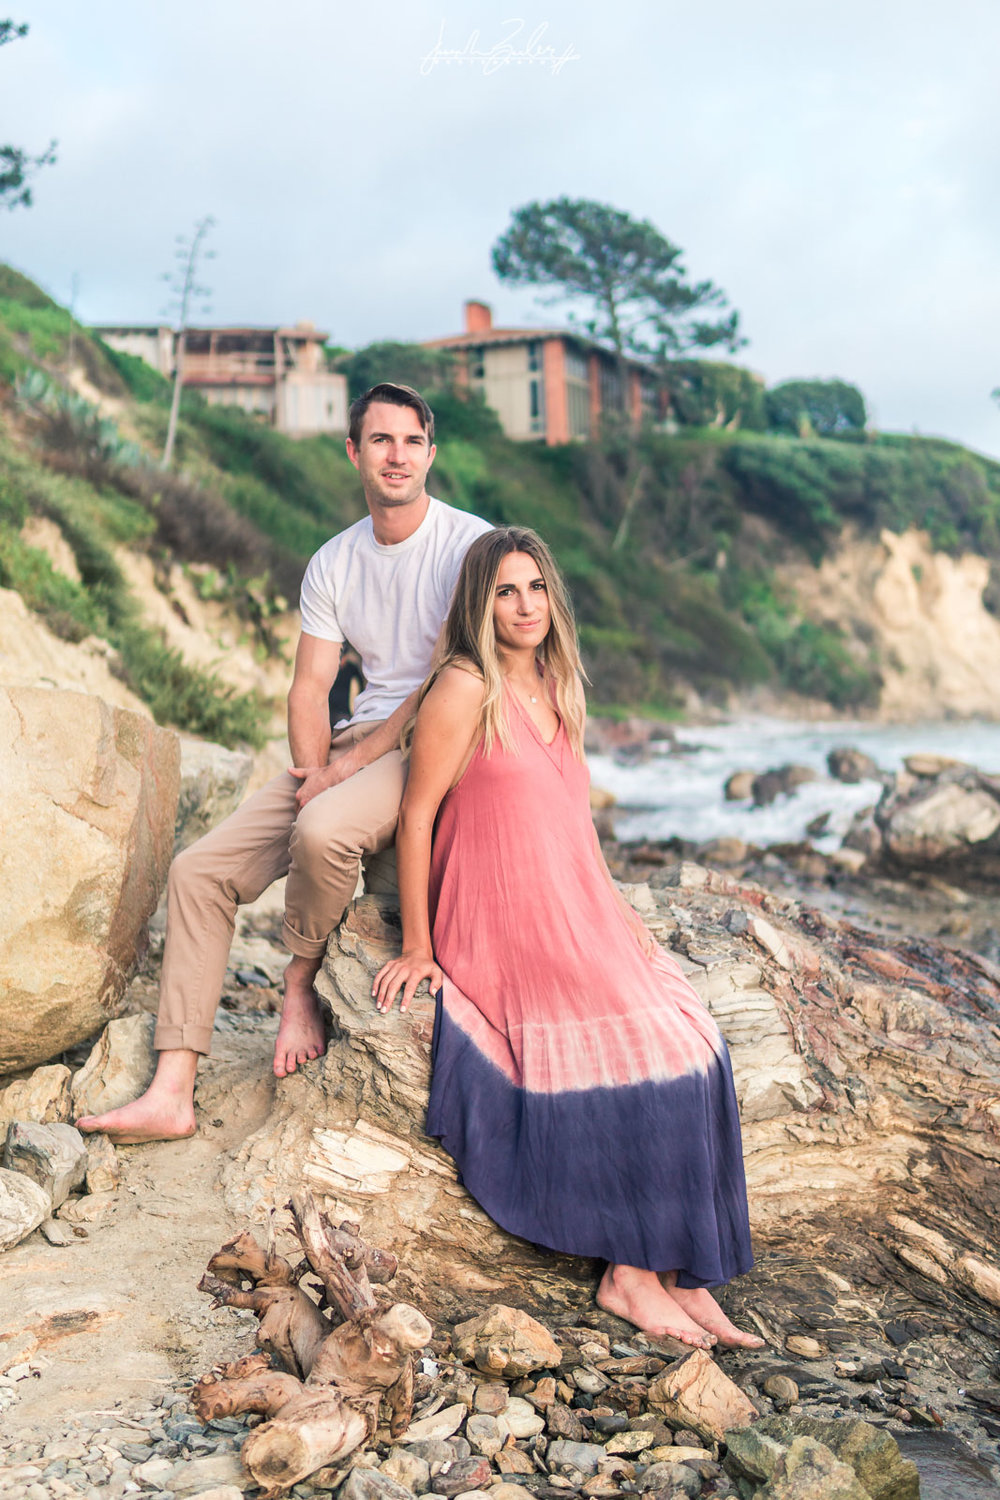 Engagement session photograph of a Couple posing On a rock during  during Golden hour at little corona del mar beach